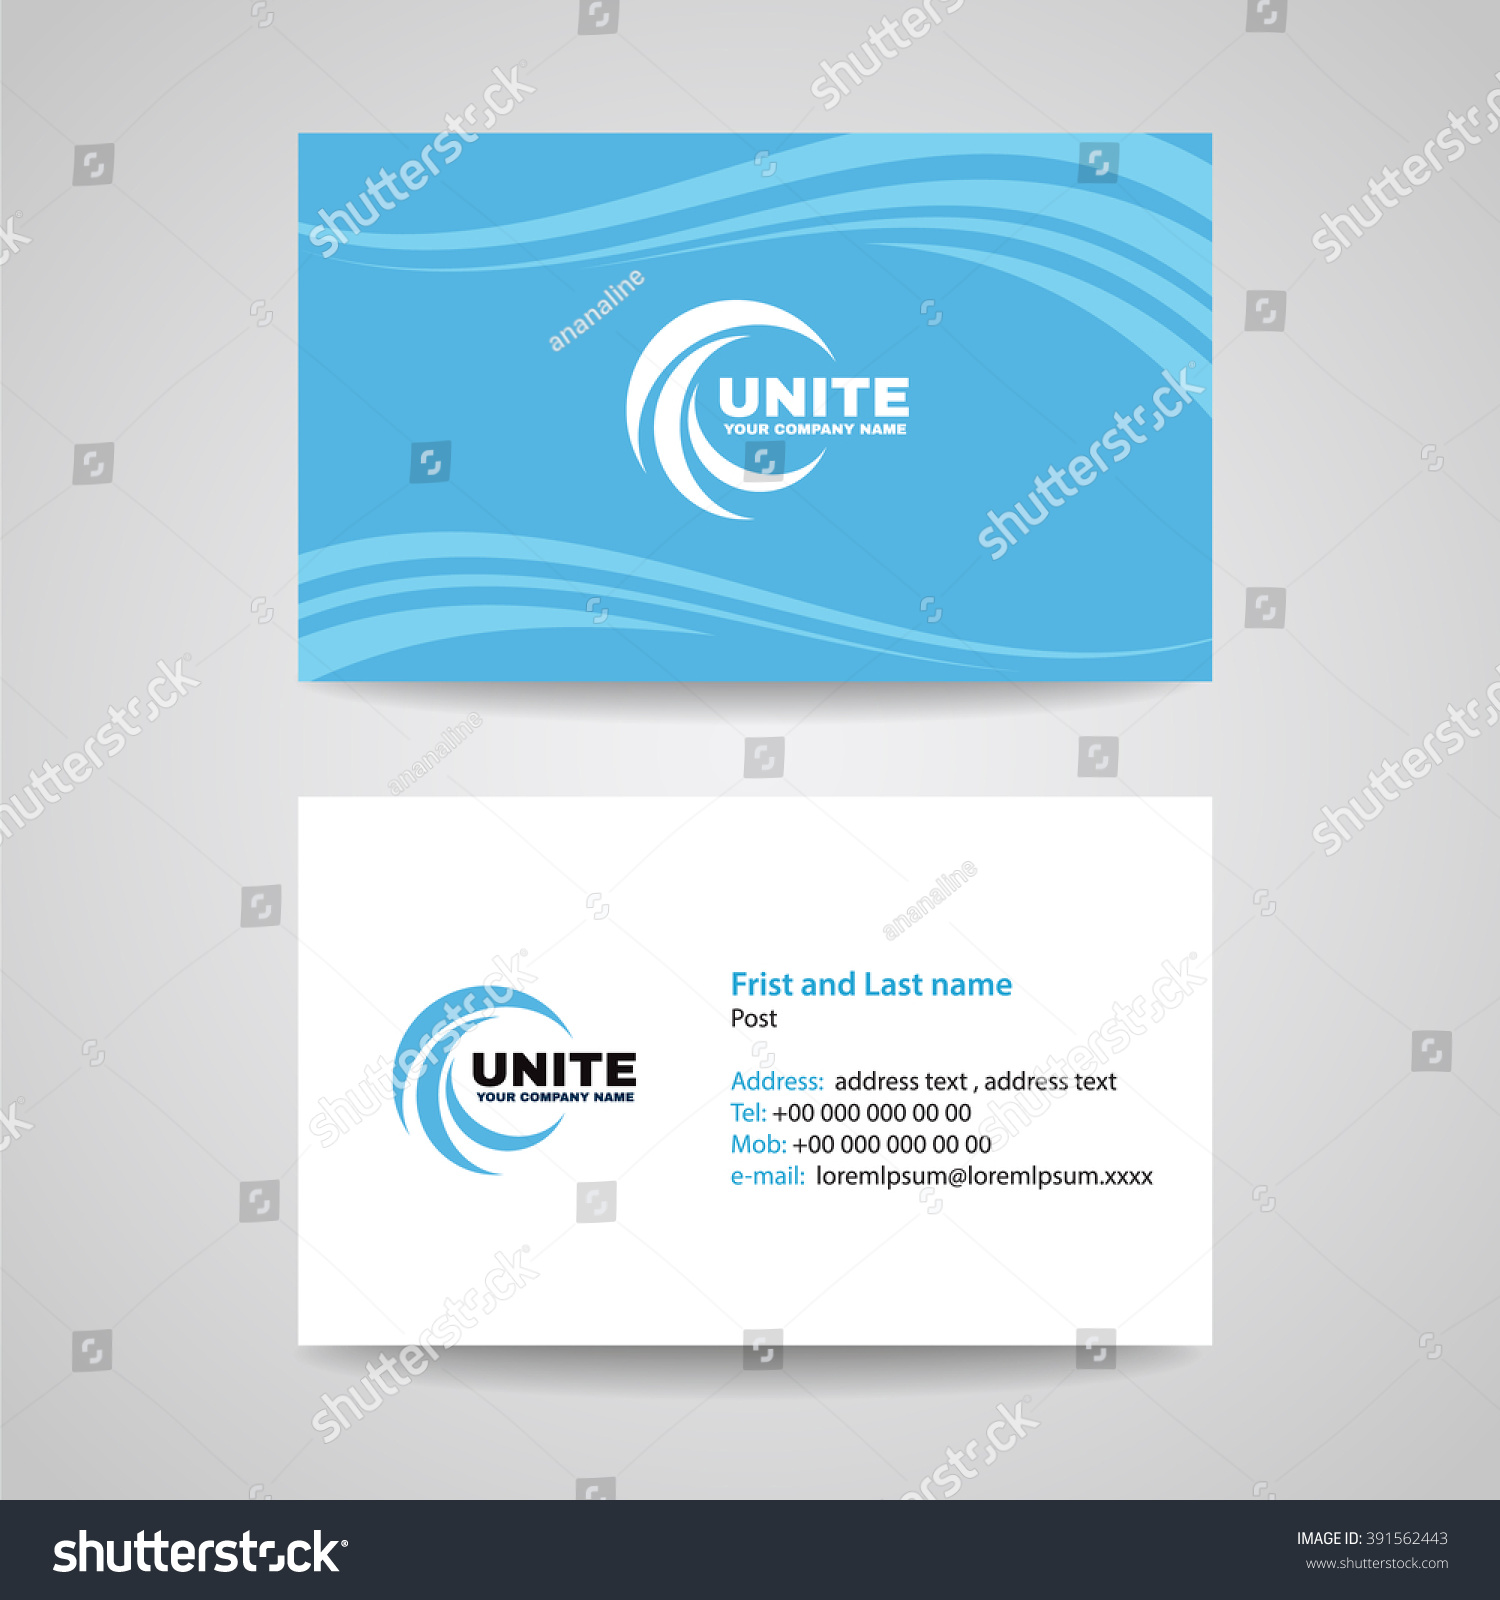 Business card background template blue sky stock vector 2018 business card background template blue sky wave style vector design colourmoves